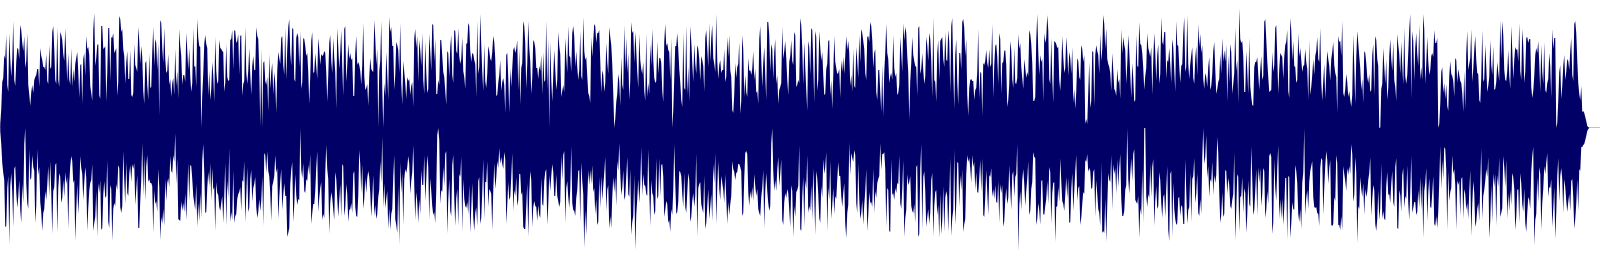 waveform of track #146075